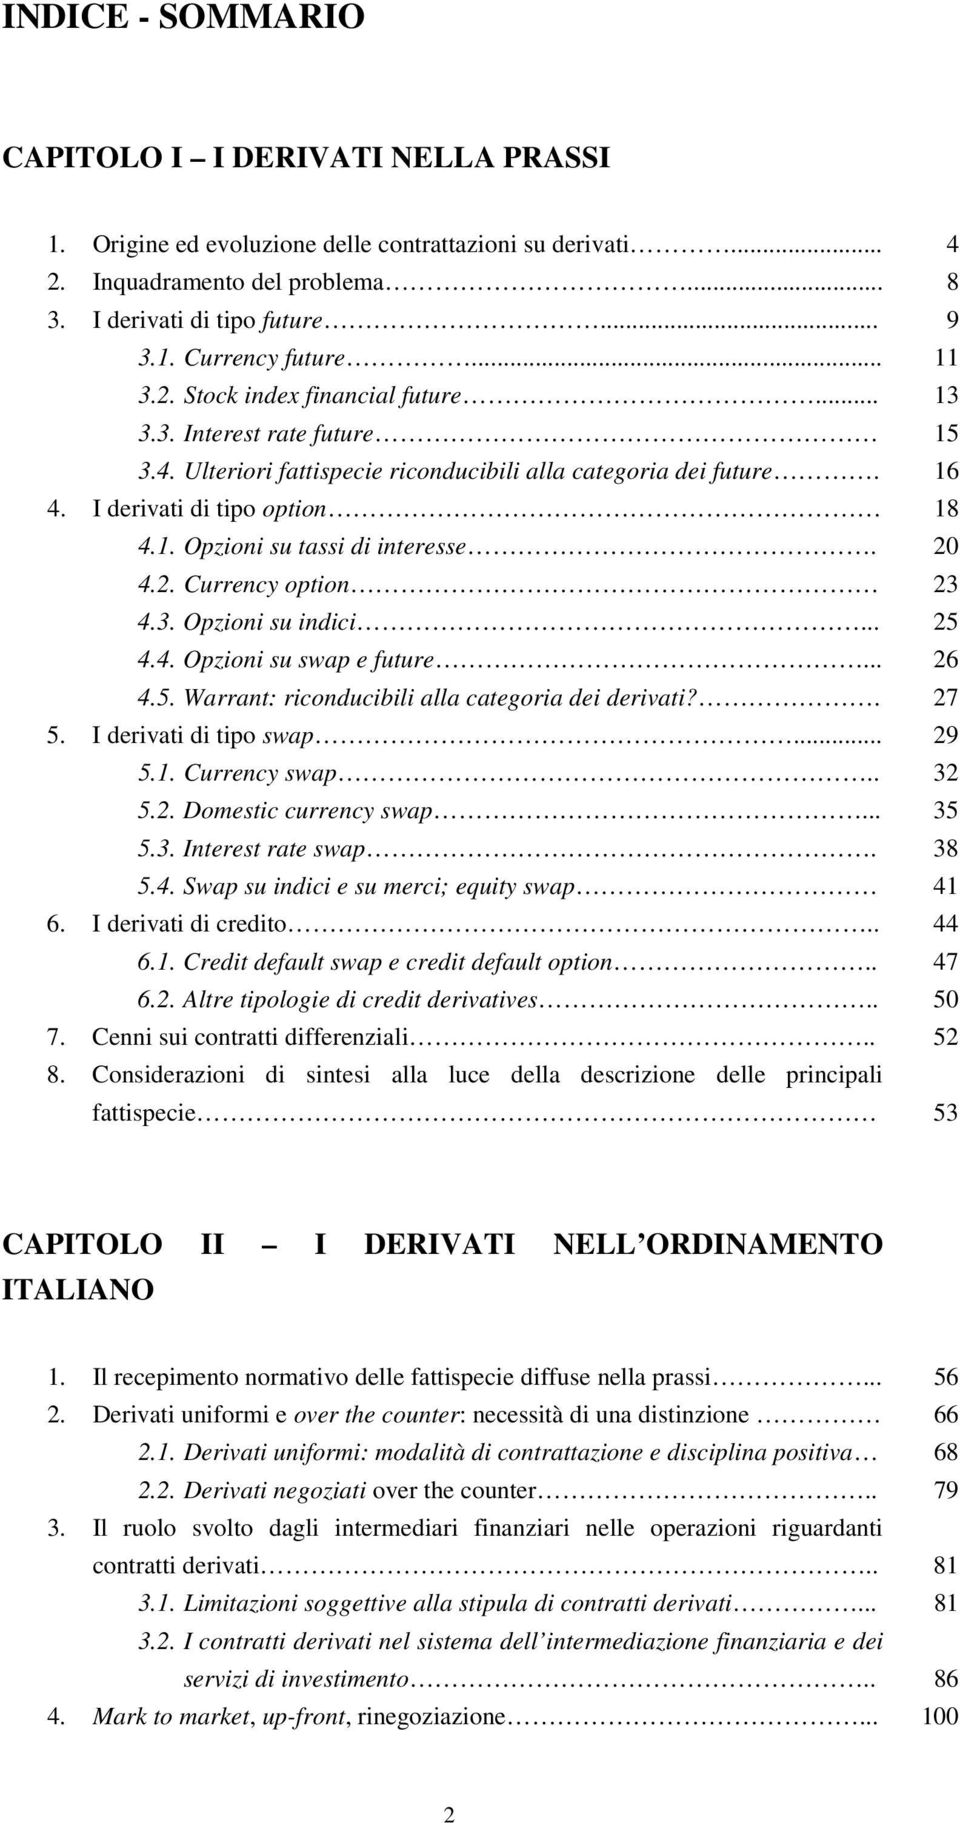 4.2. Currency option 4.3. Opzioni su indici... 4.4. Opzioni su swap e future... 4.5. Warrant: riconducibili alla categoria dei derivati?. 20 23 25 26 27 5. I derivati di tipo swap... 29 5.1.